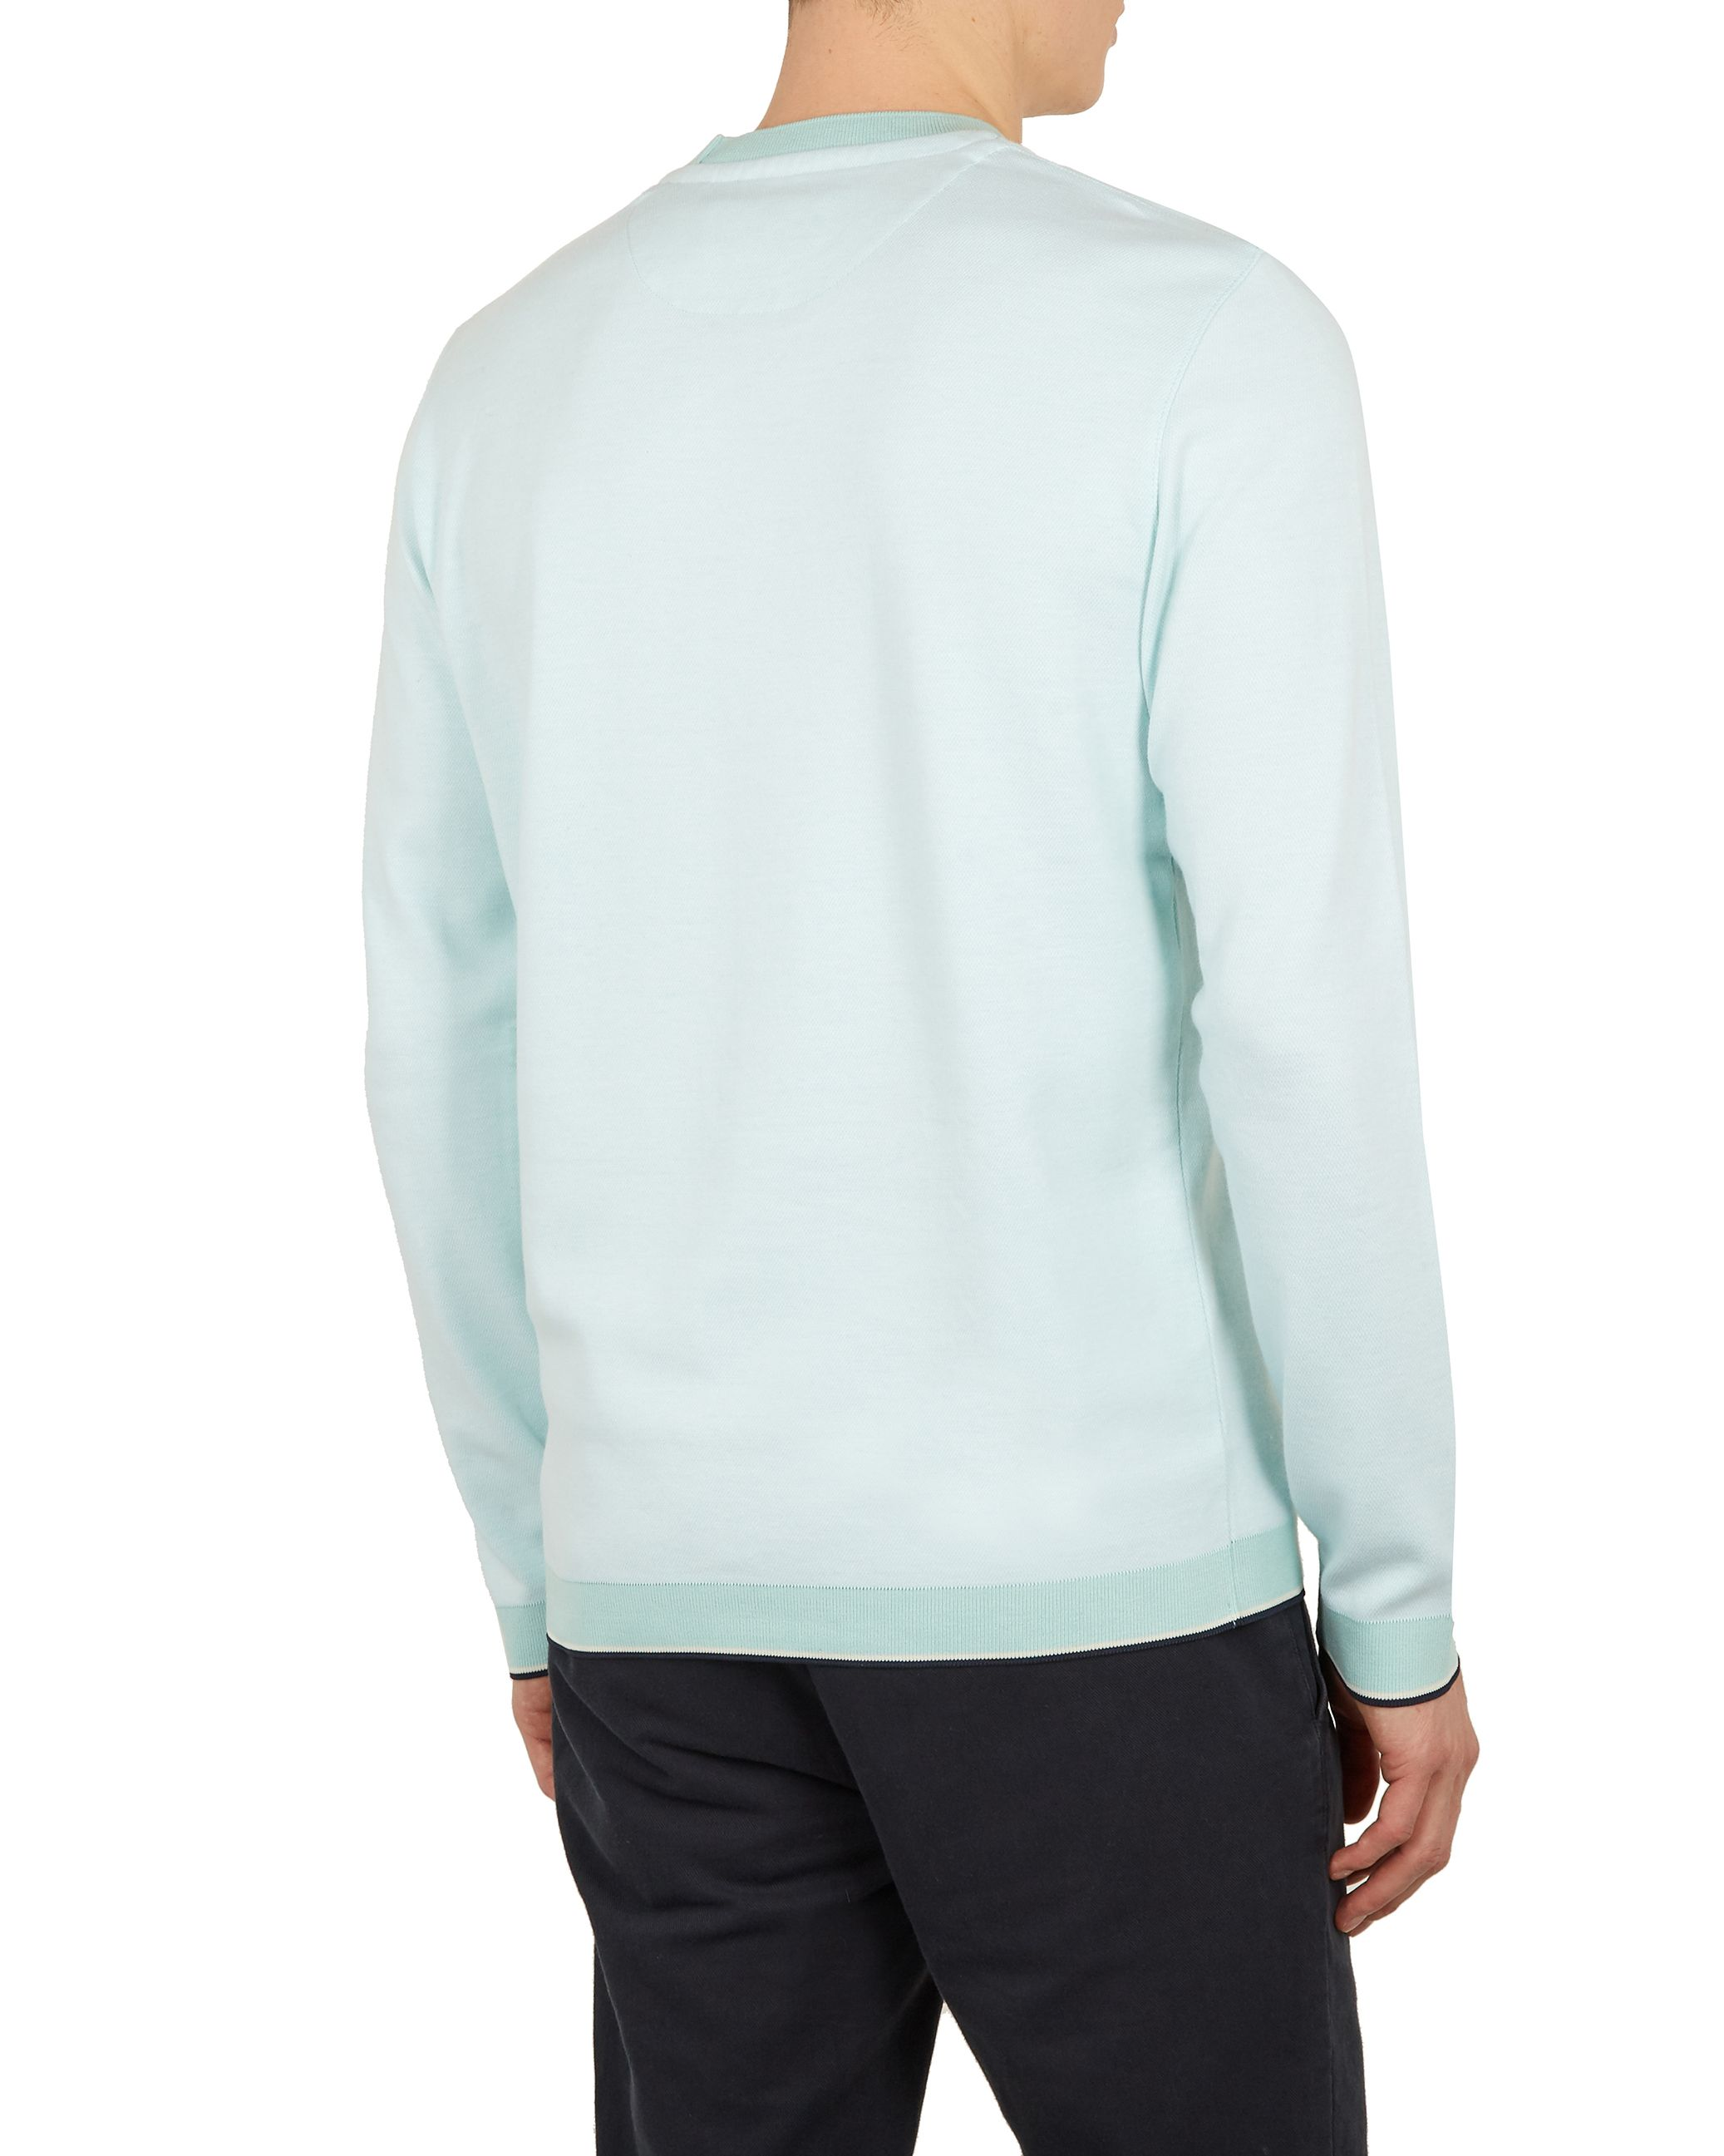 Ted Baker Toyde Long-Sleeved Oxford Jersey Crew Neck, Mint